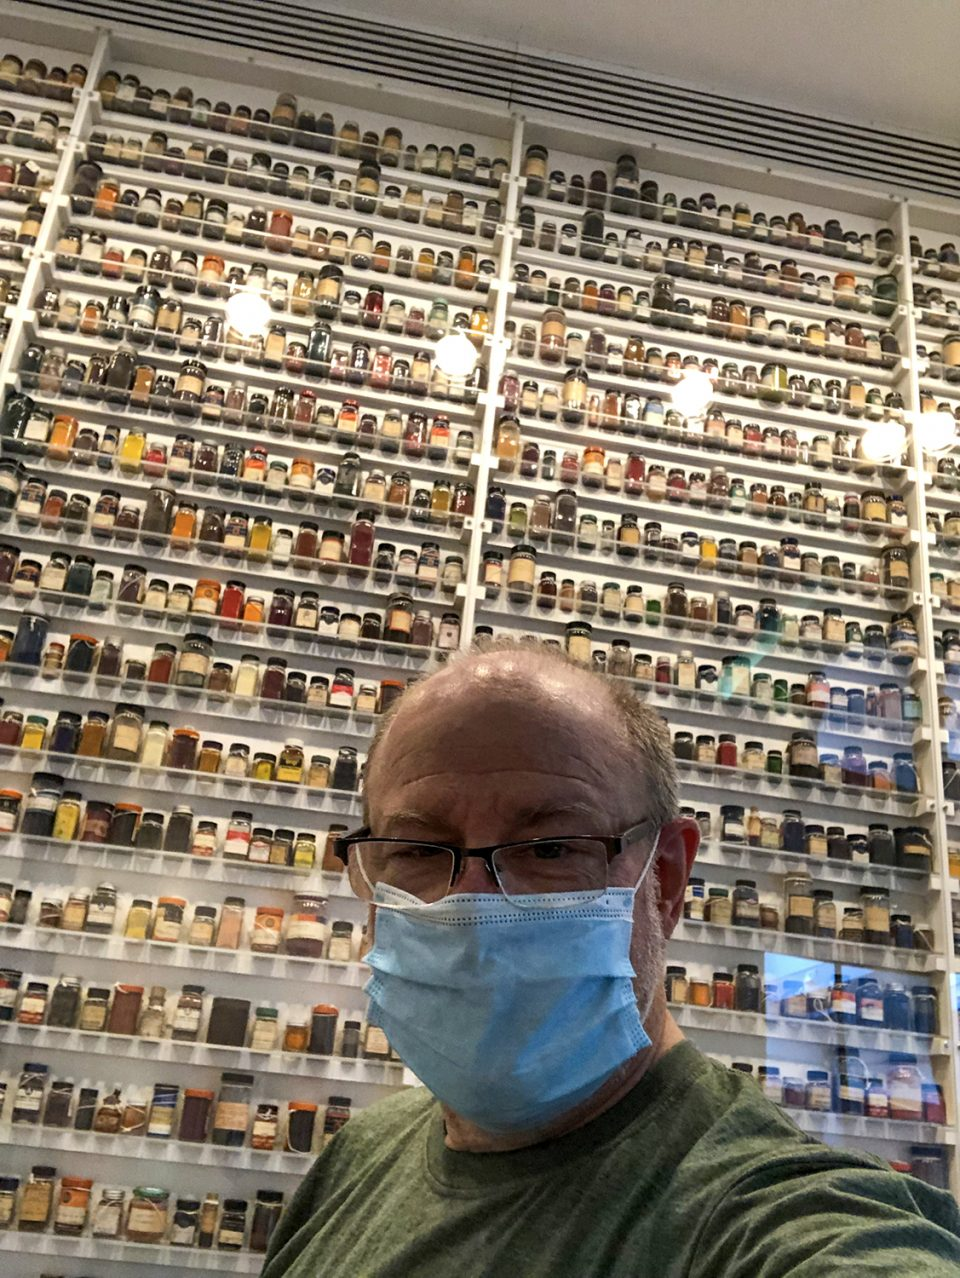 Selfie in front of the huge display of color dyes that were explored to create the look of Technicolor for movies, at the George Eastman Museum in Rochester, N.Y., August 2021.